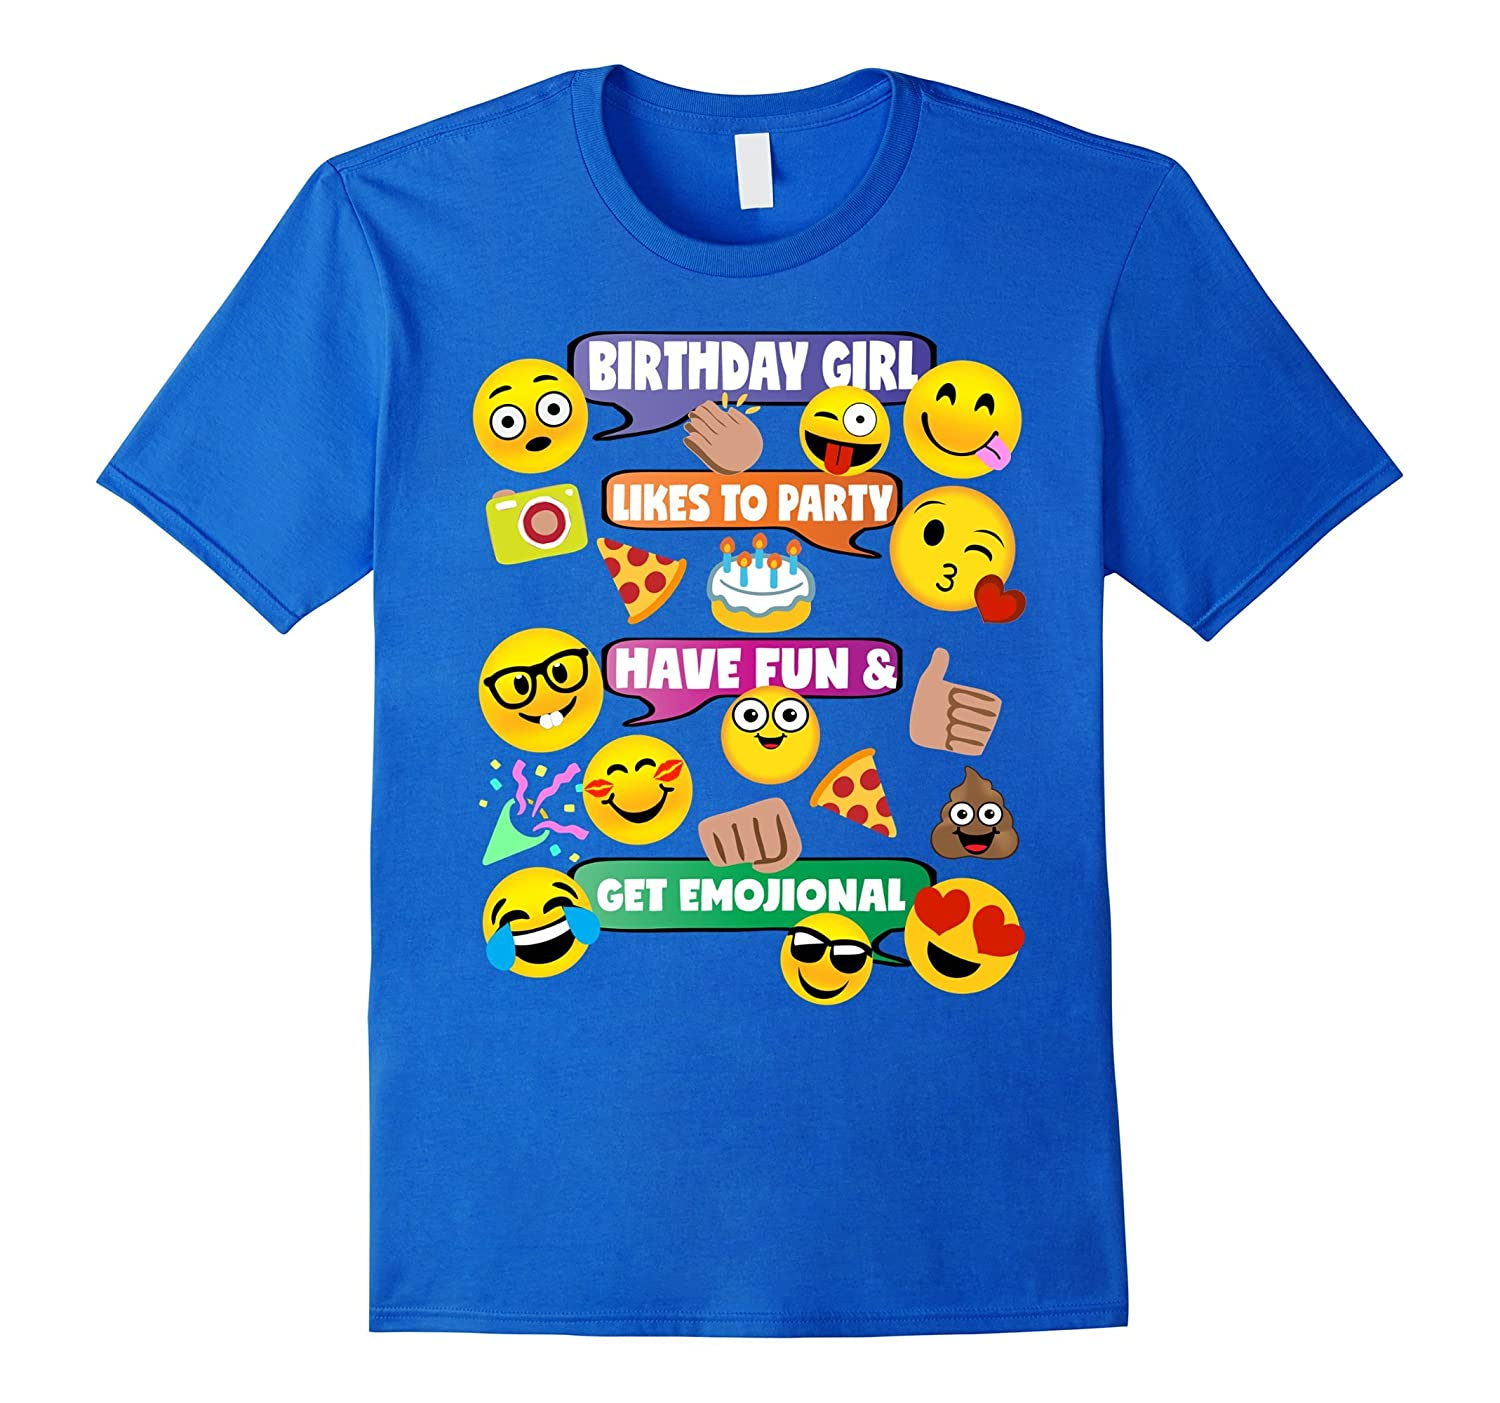 Girls Emoji Birthday Shirt Party Theme Outfit Conversation